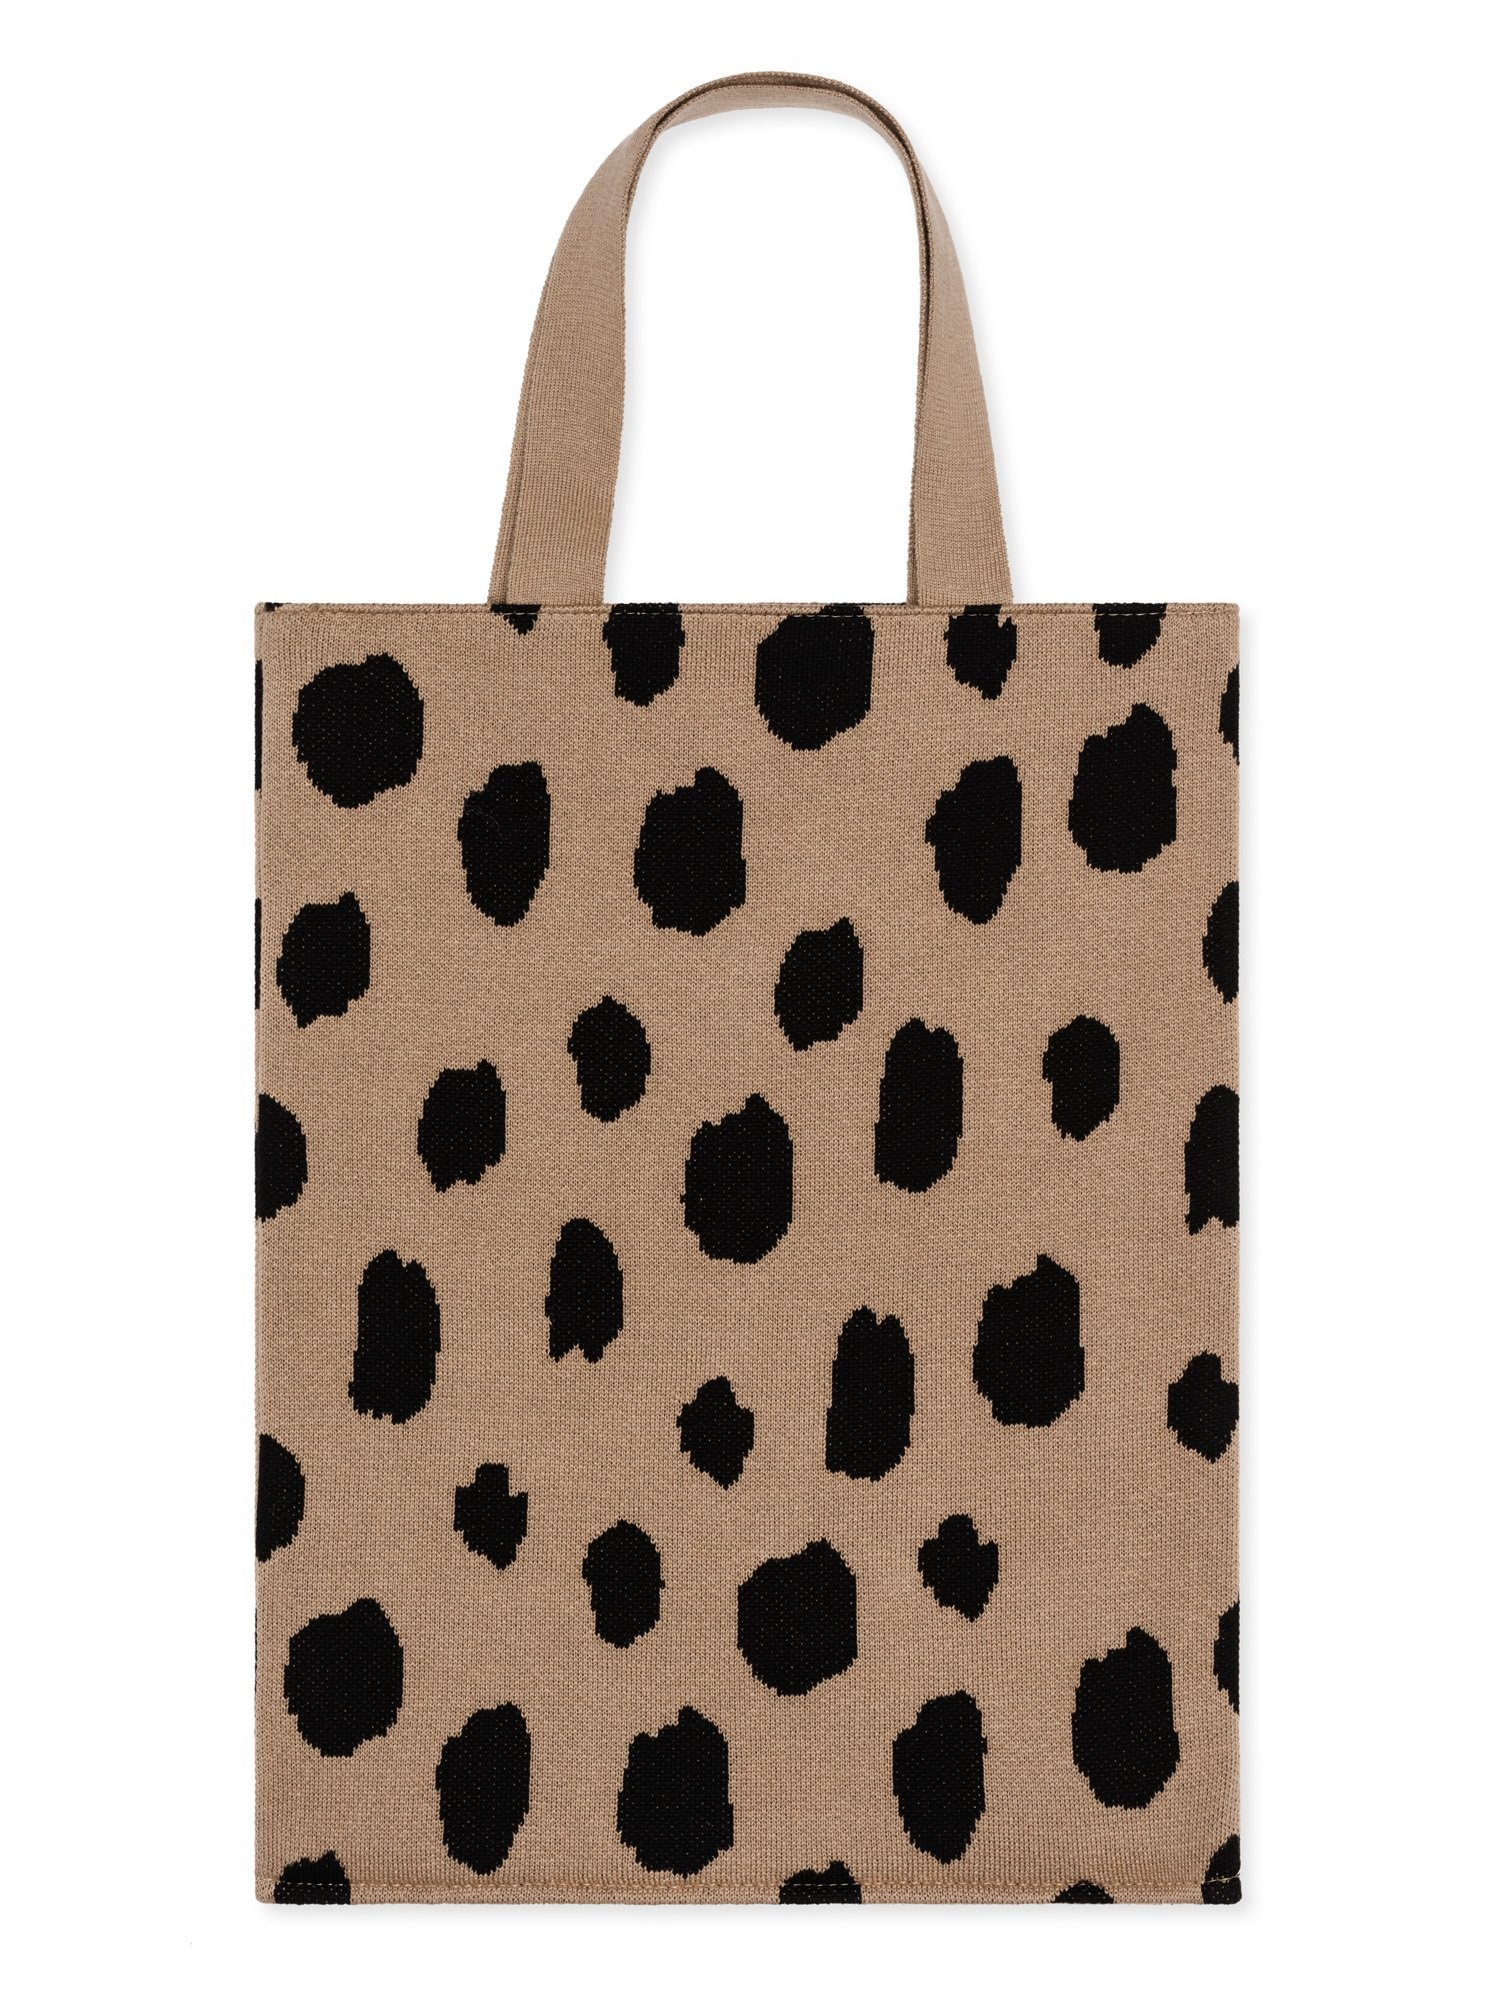 Hansel From Basel Hansel from Basel Spotted Tote Bag in Beige